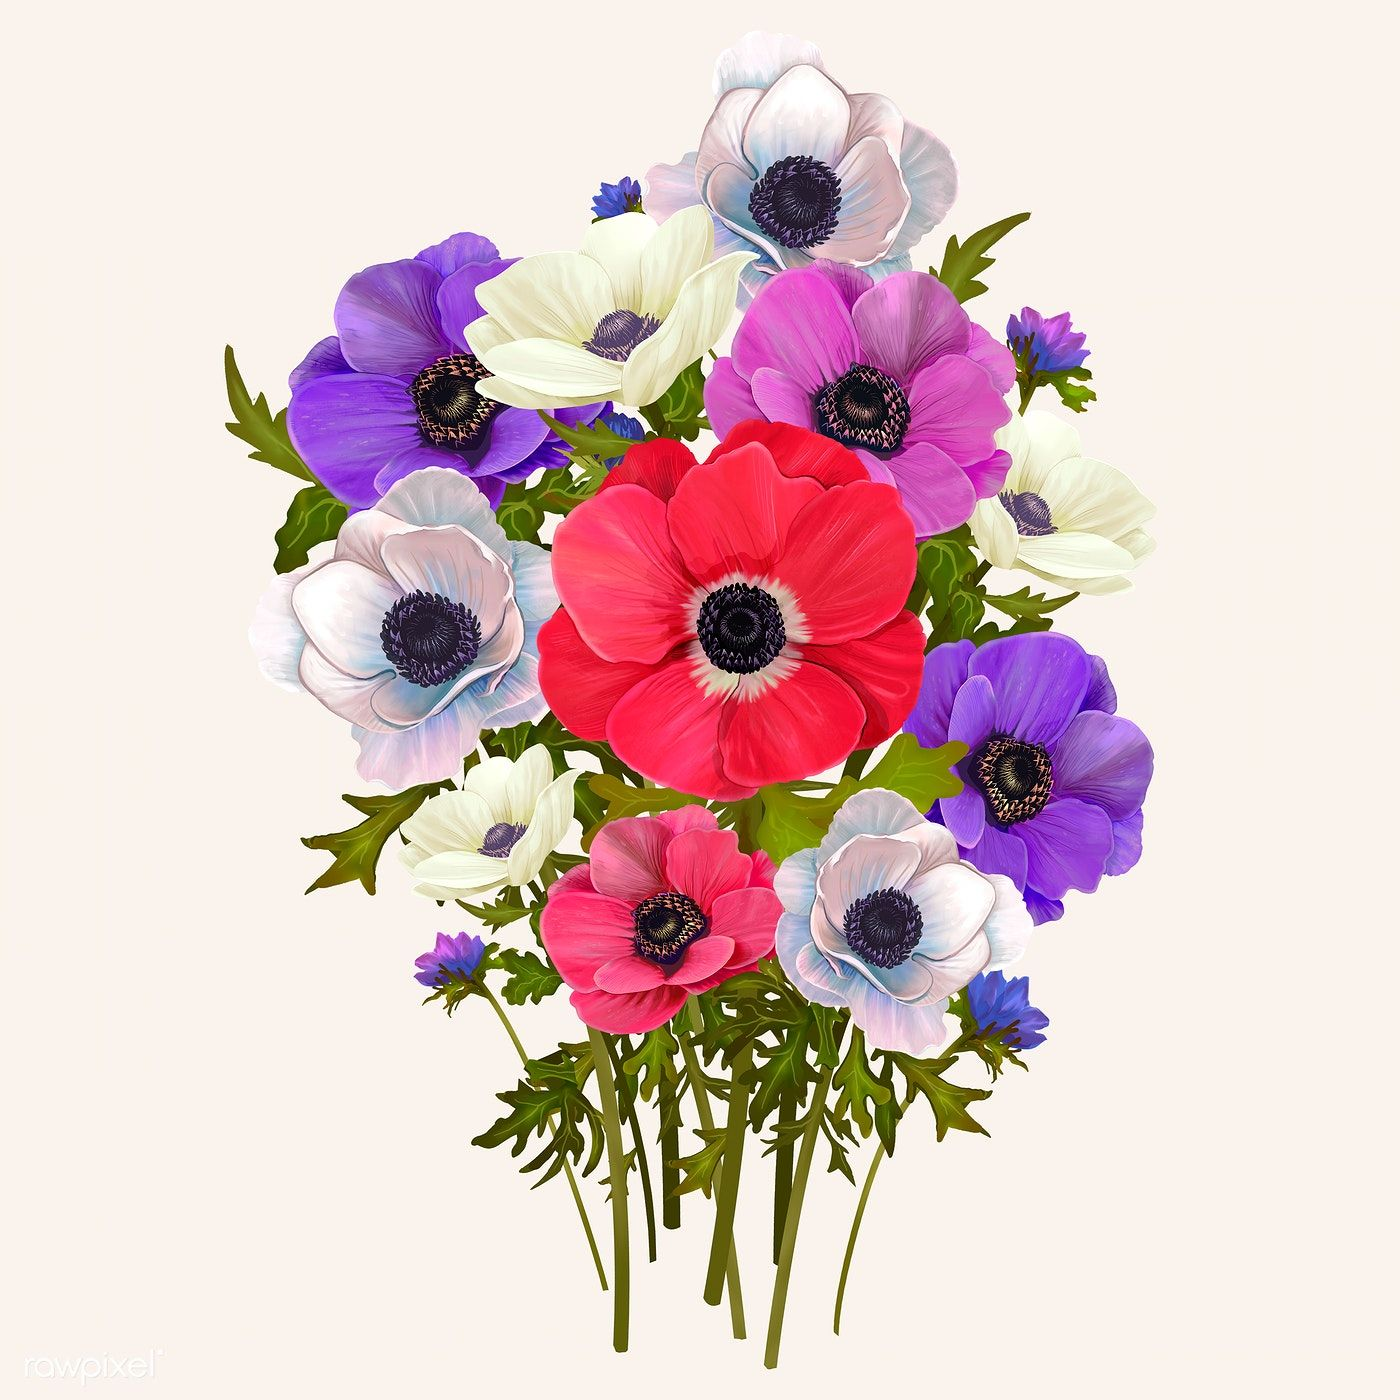 Download Premium Illustration Of Beautiful Anemone Flowering Plant Plant Illustration Flower Illustration Anemone Flower